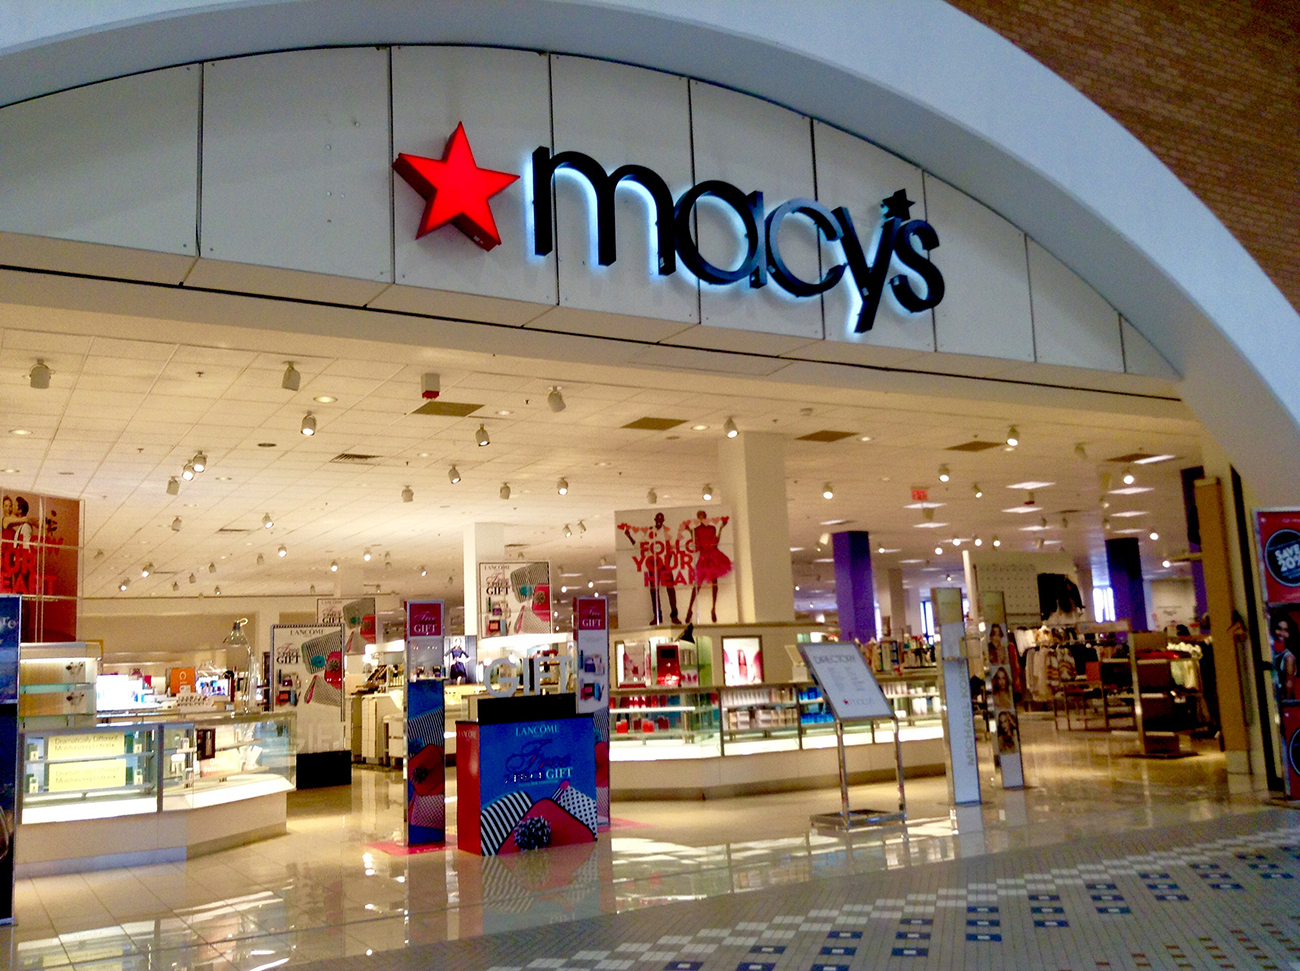 Photograph shows the brightly lit entrance to a Macy's department store.